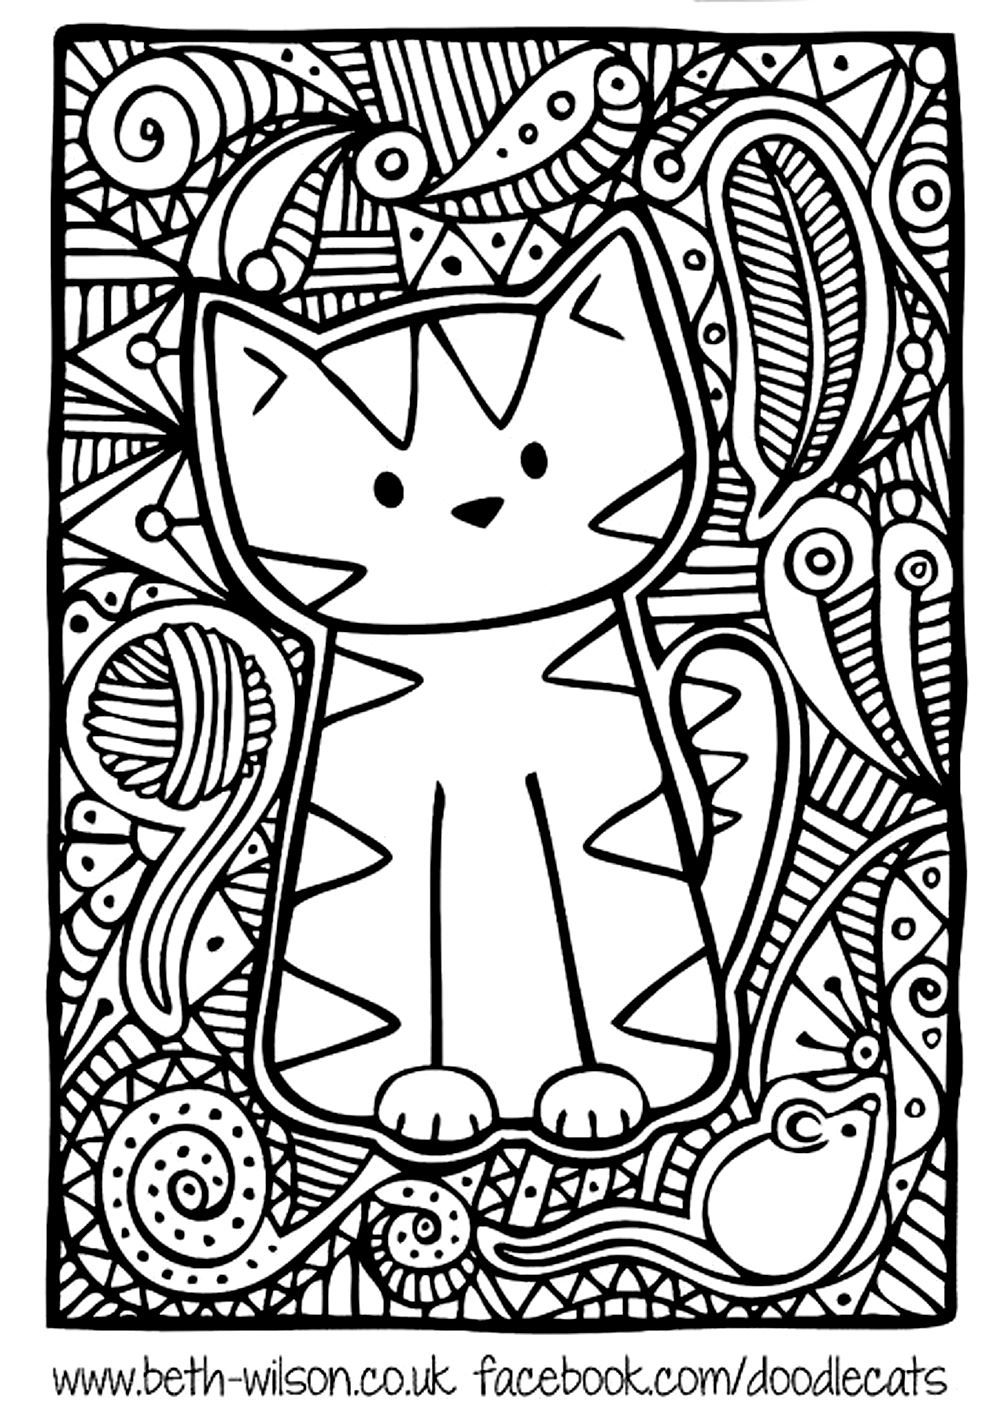 Free Coloring Page Coloring Adult Difficult Cute Cat Boyama